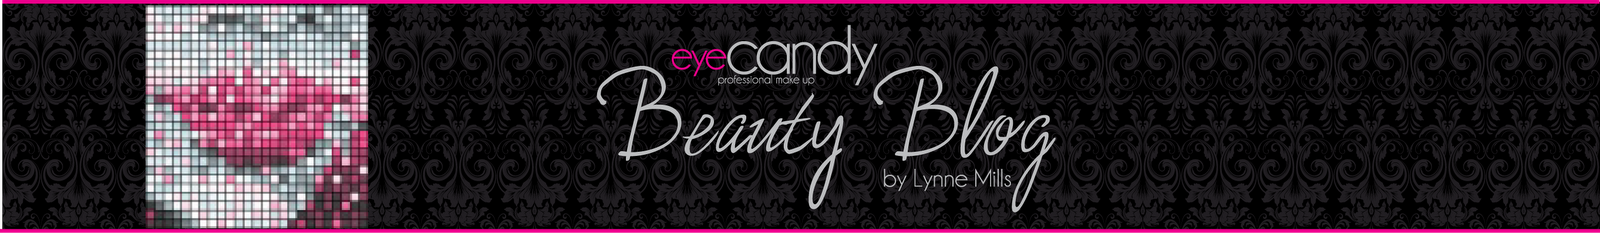 EyeCandy Make-Up &amp; Beauty Blog